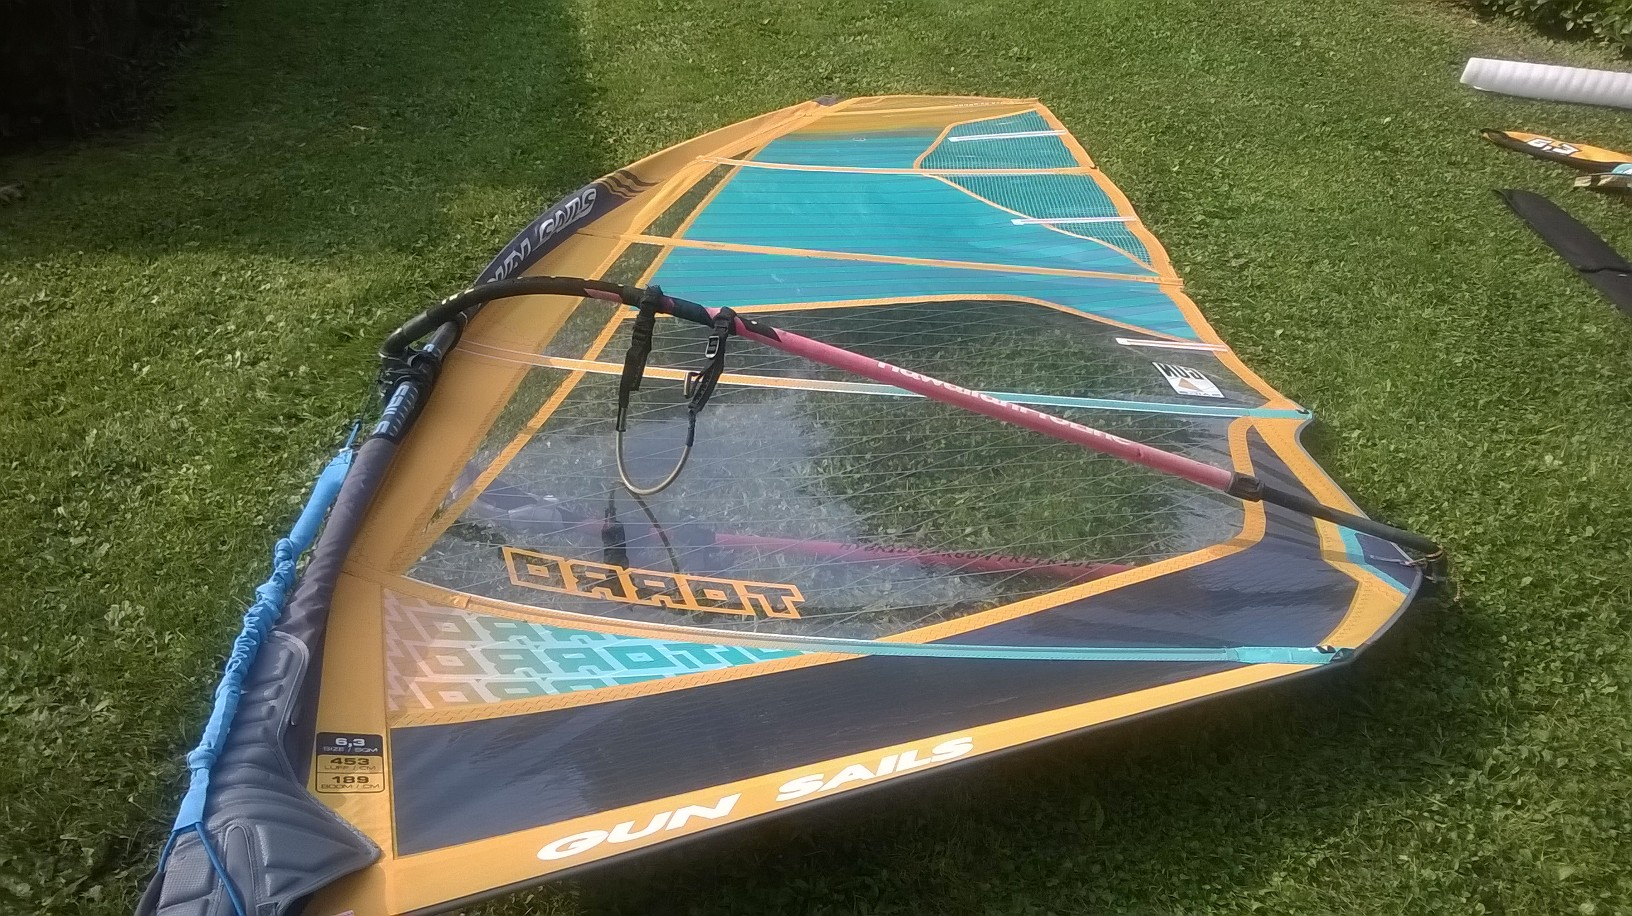 Windsurf: a beginners guide to equipment choice